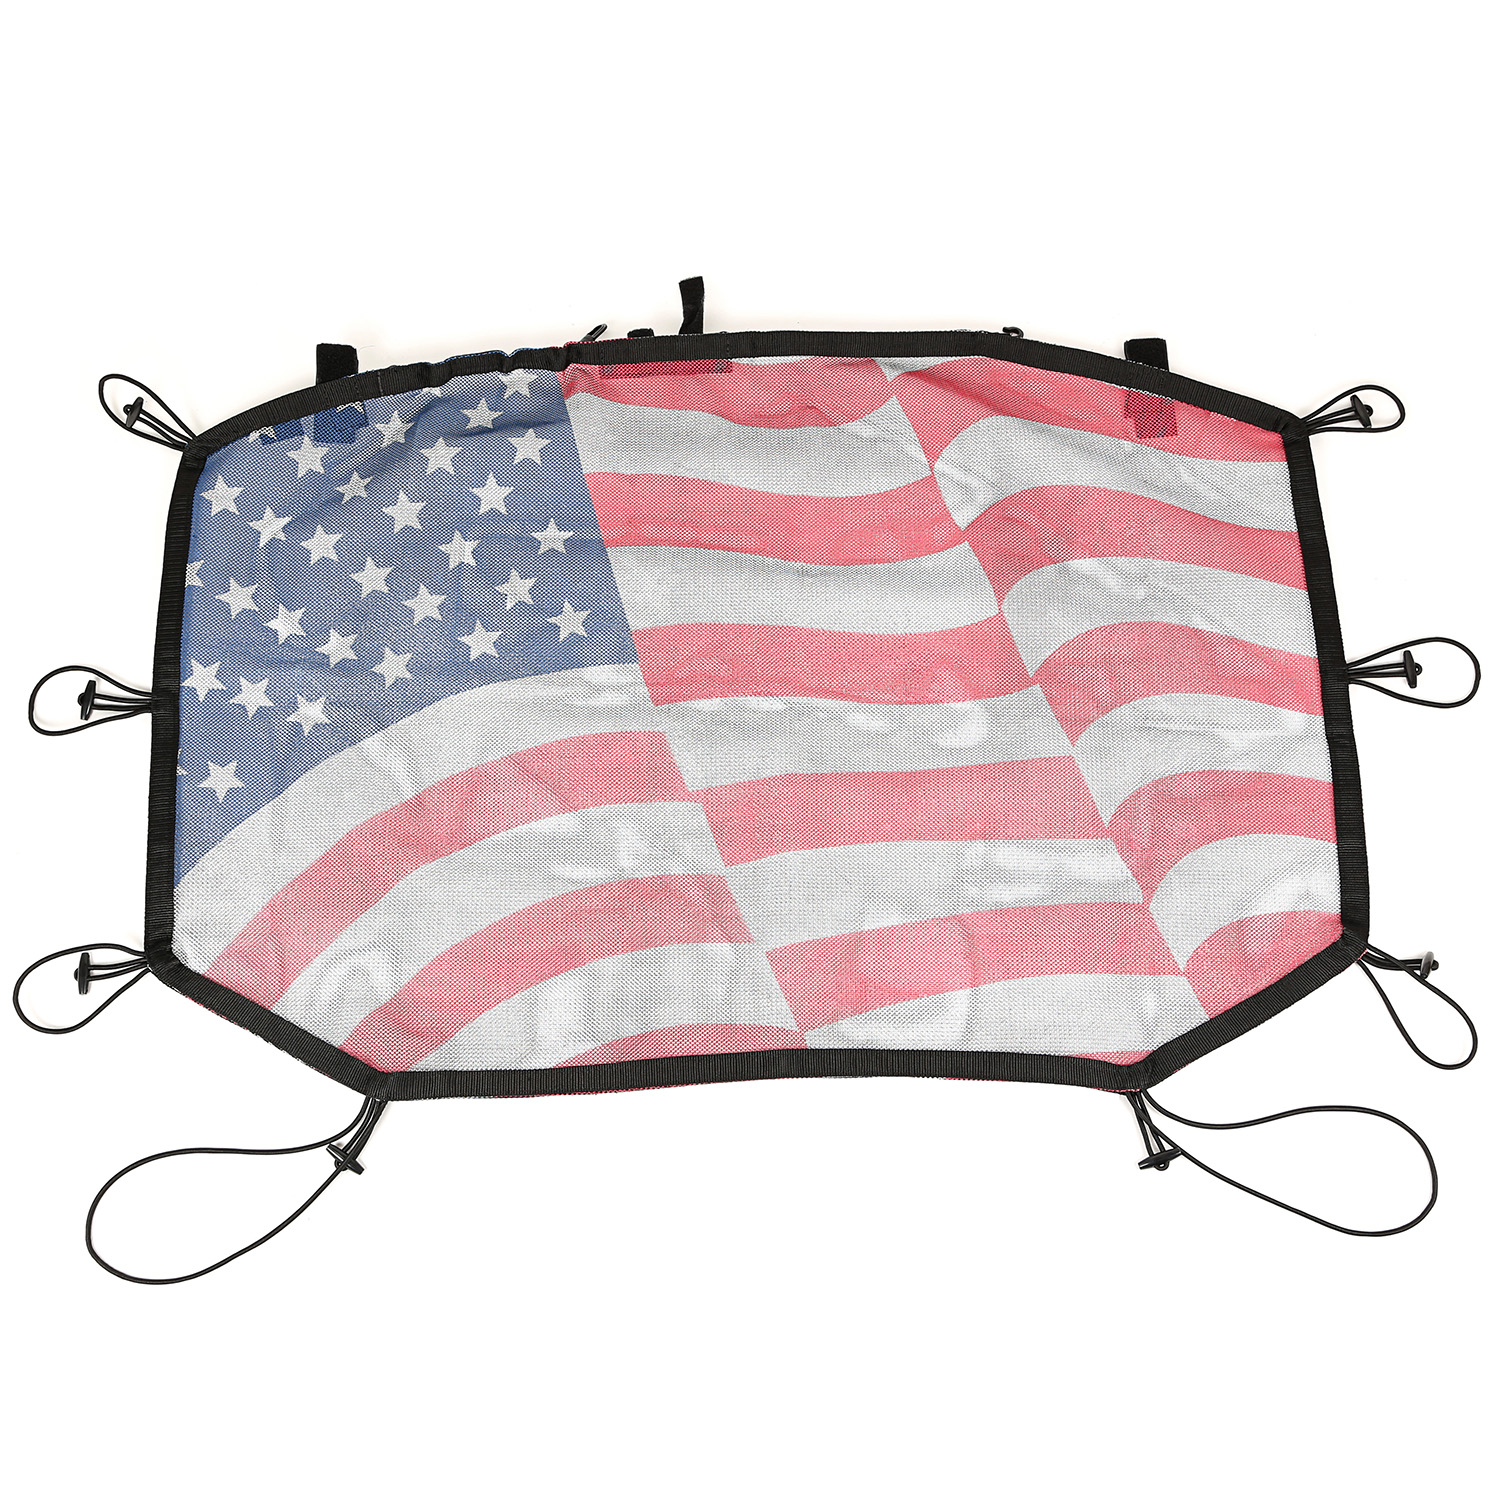 Rugged Ridge Hardtop Sun Shade, Flag - JK